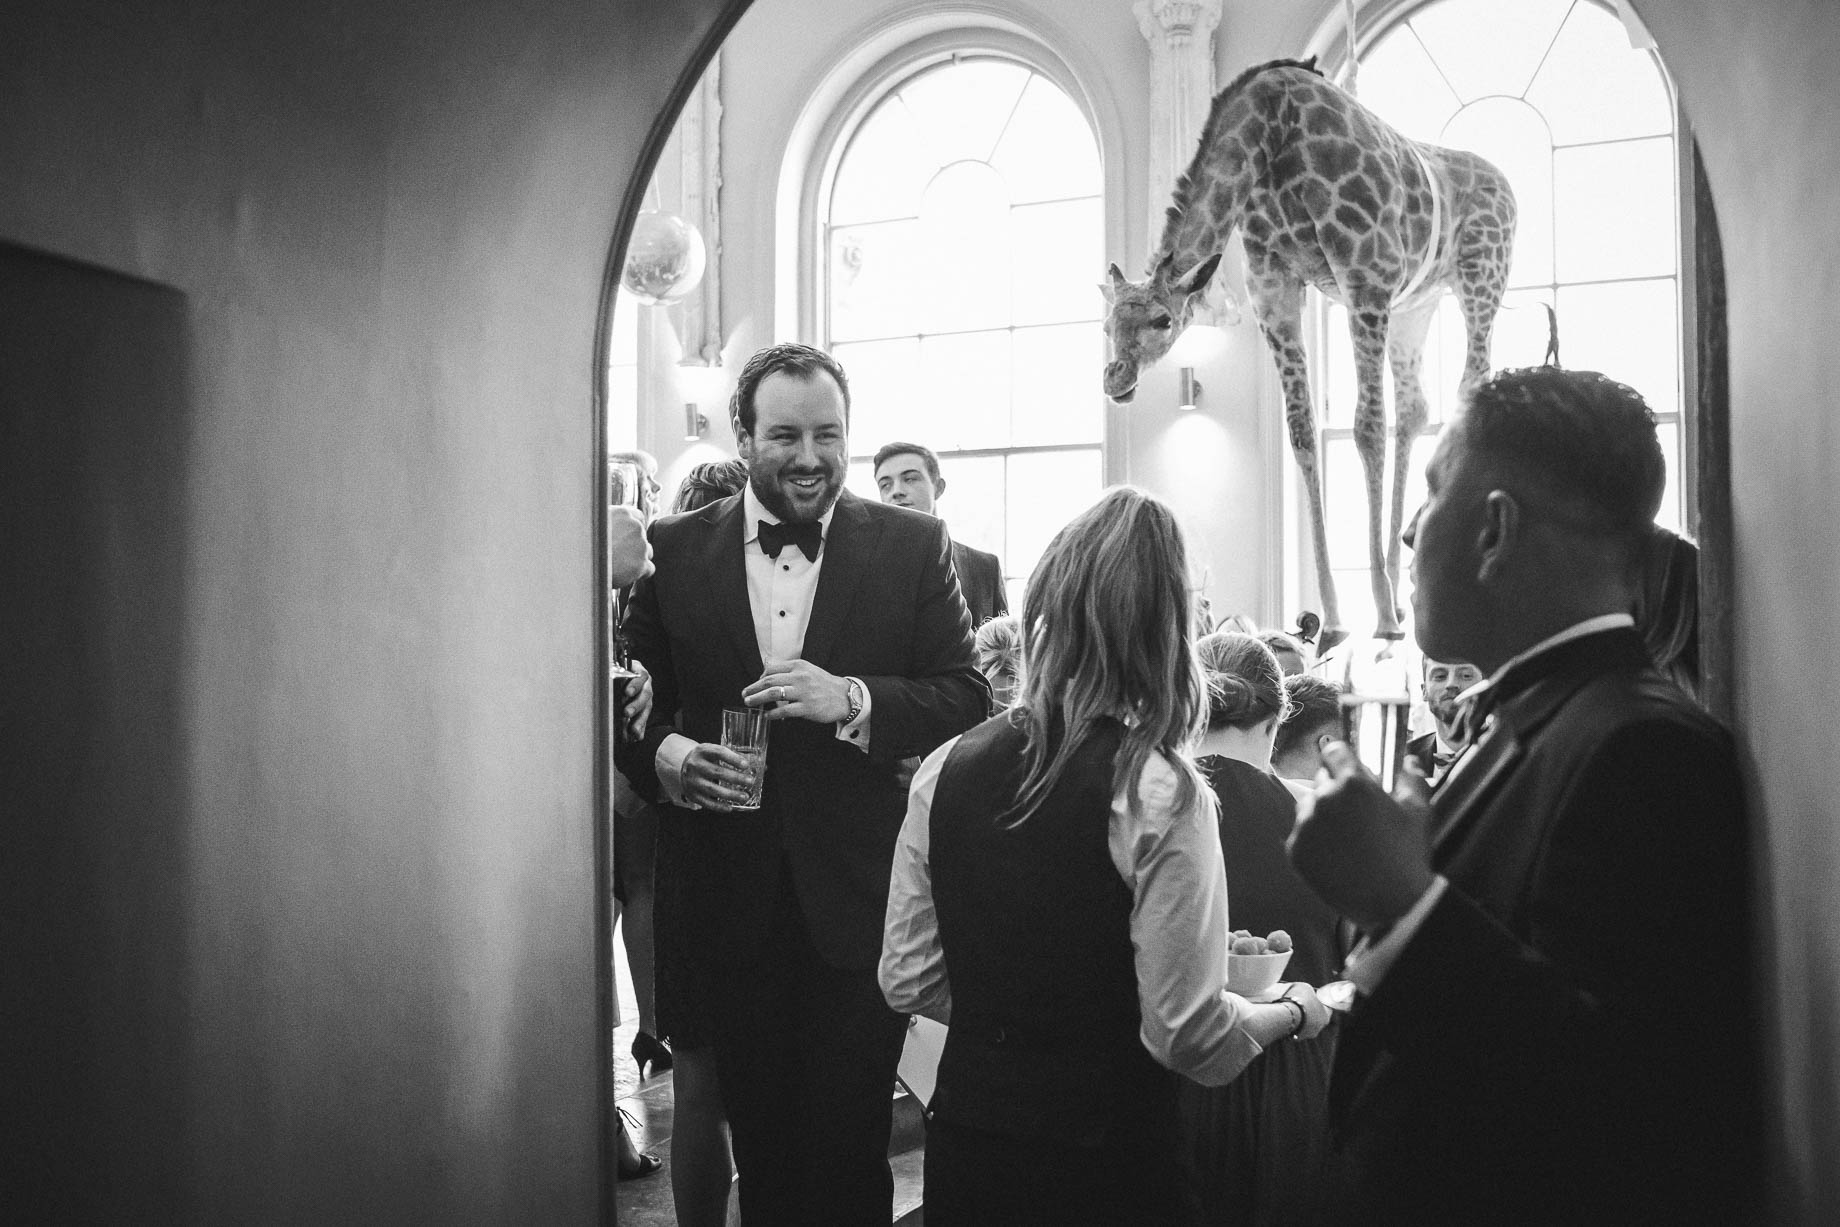 Aynhoe Park wedding photography by Guy Collier - Grace and Andrew